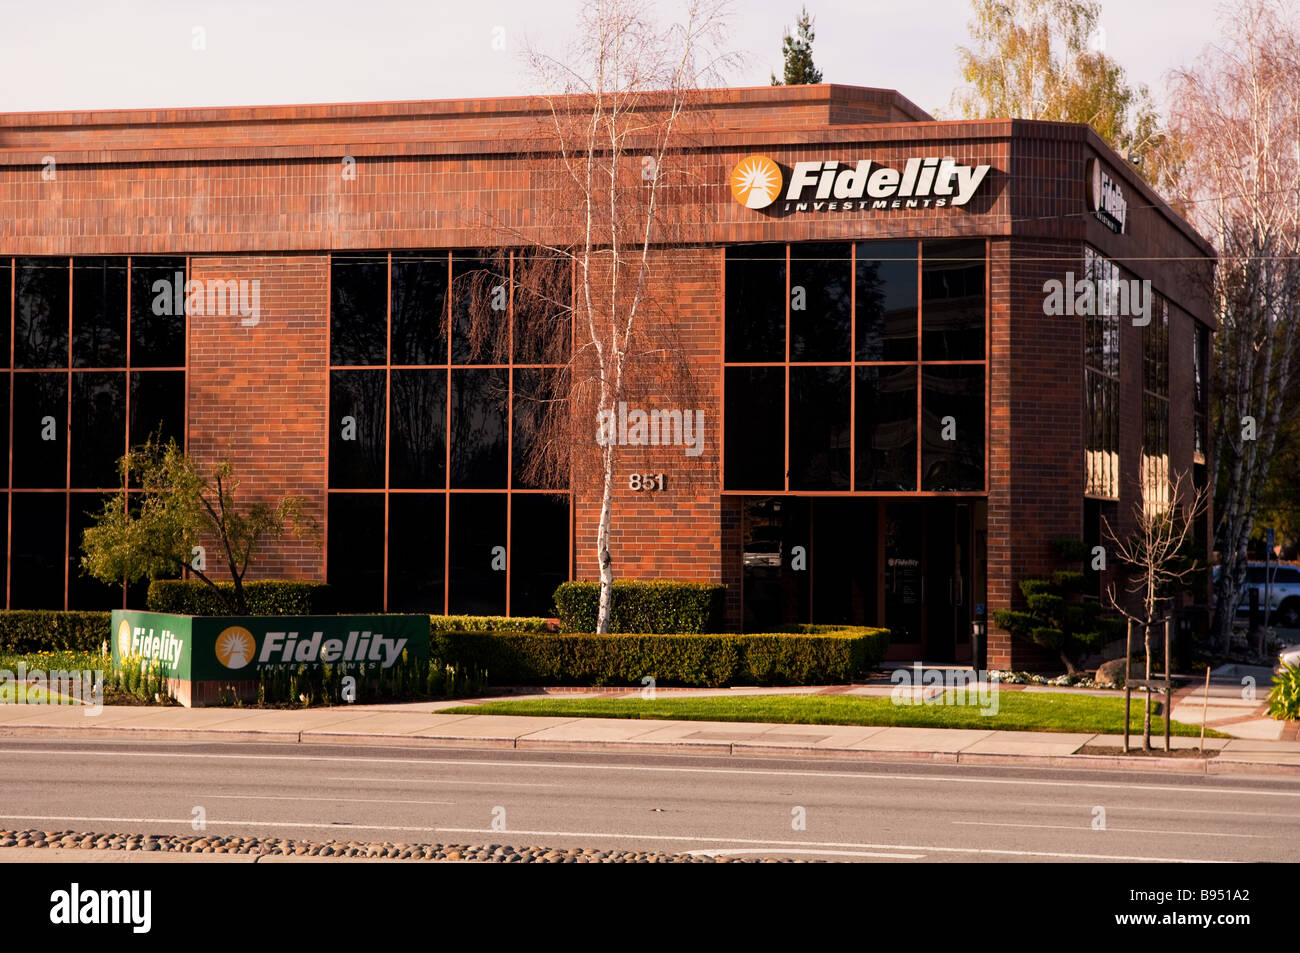 Outside of Fidelity Investments building with street sign and building sign visible - Stock Image